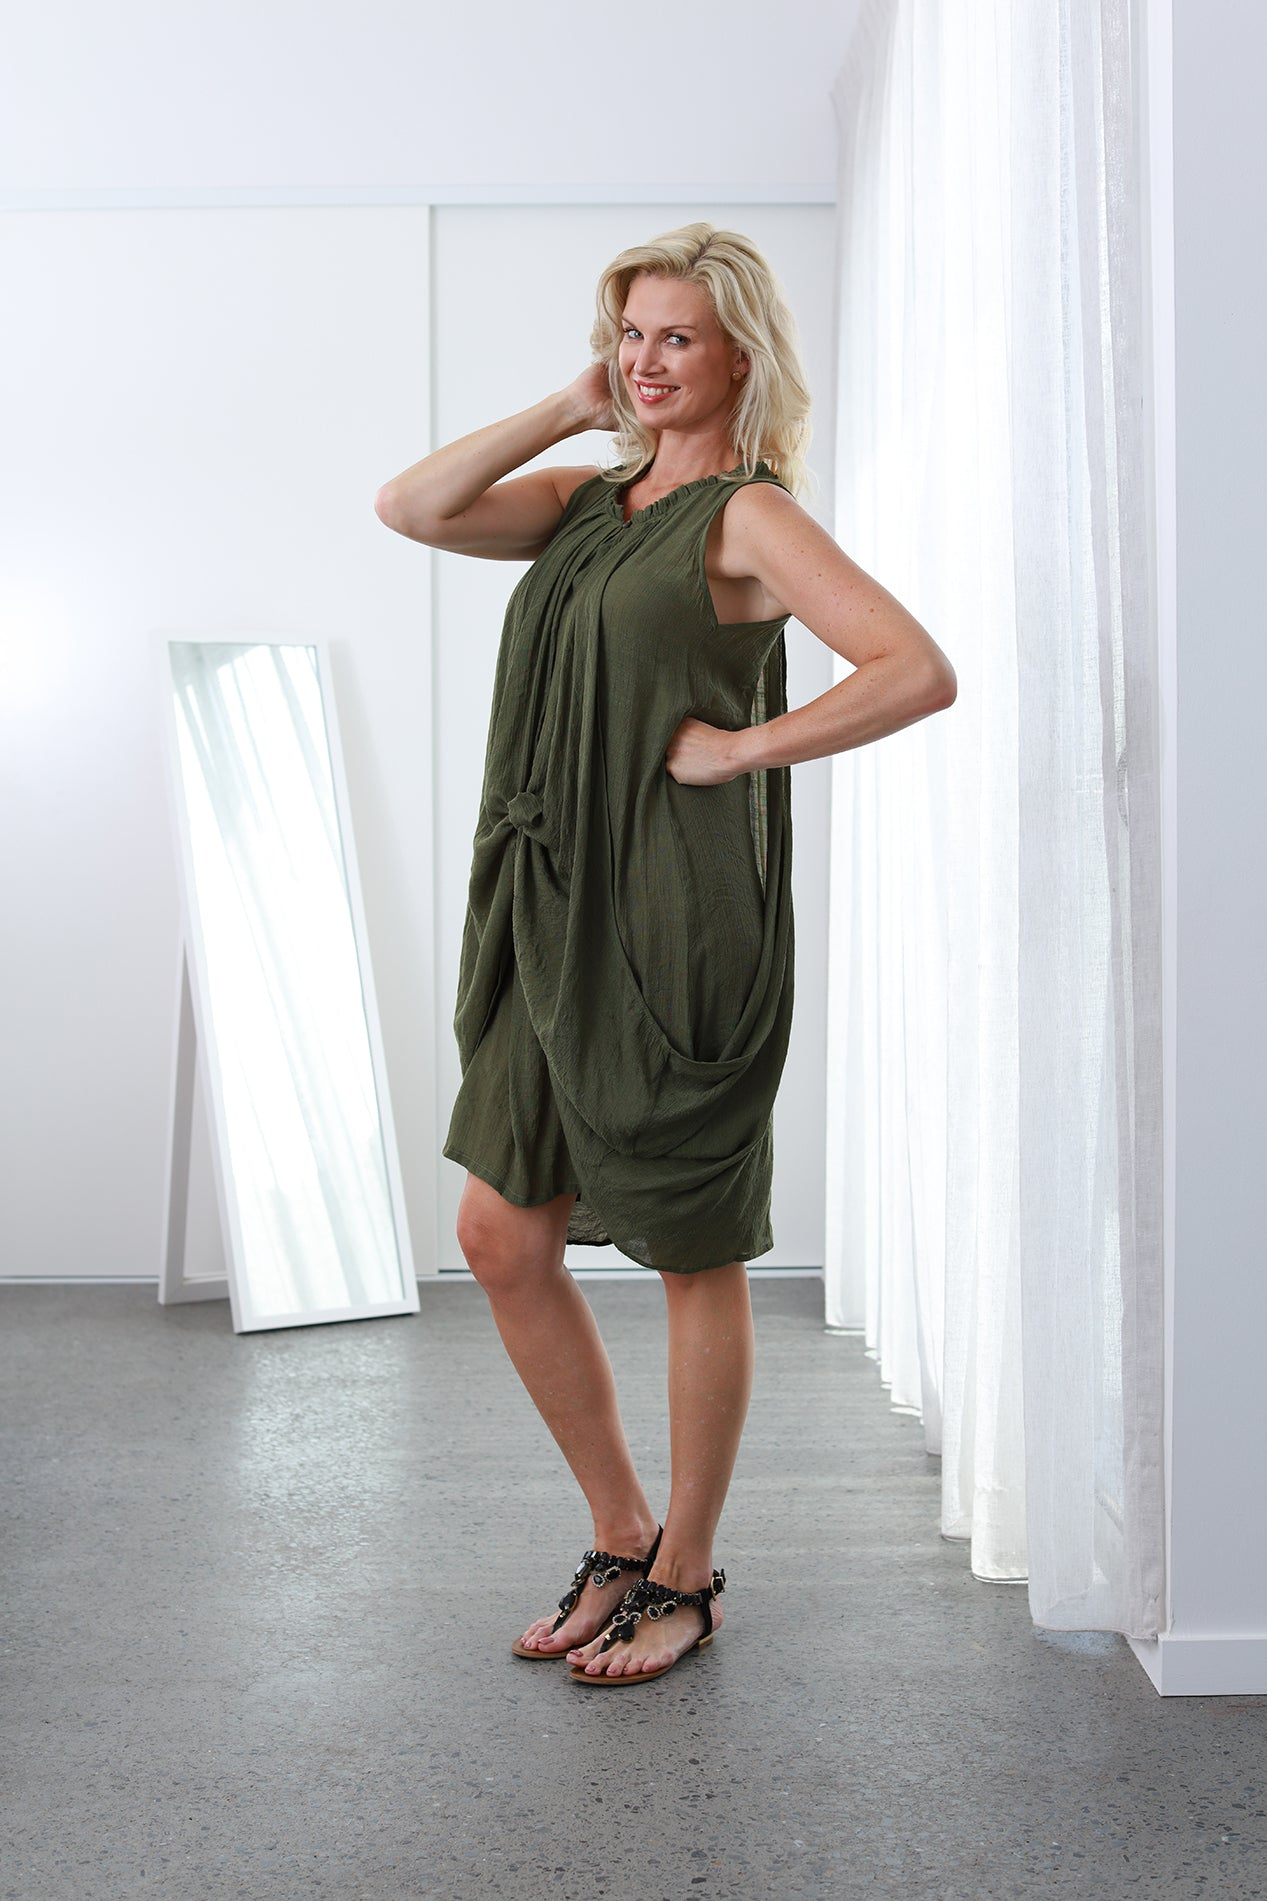 Sue Ellen Olive Green NEW SIZE RANGE XS to 5XL